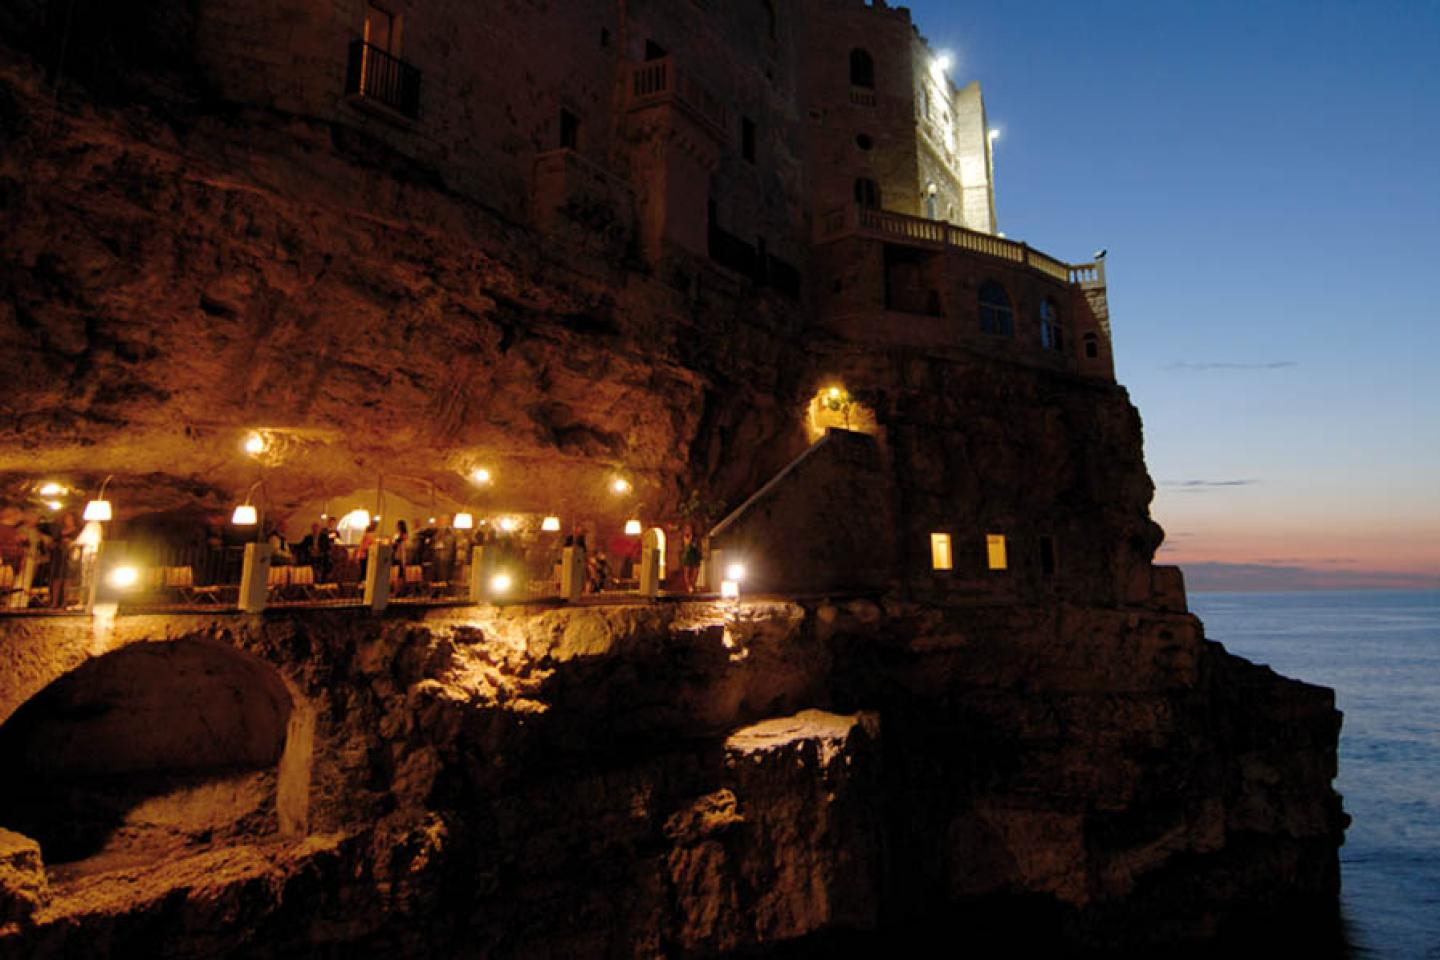 The summer restaurant in the cave